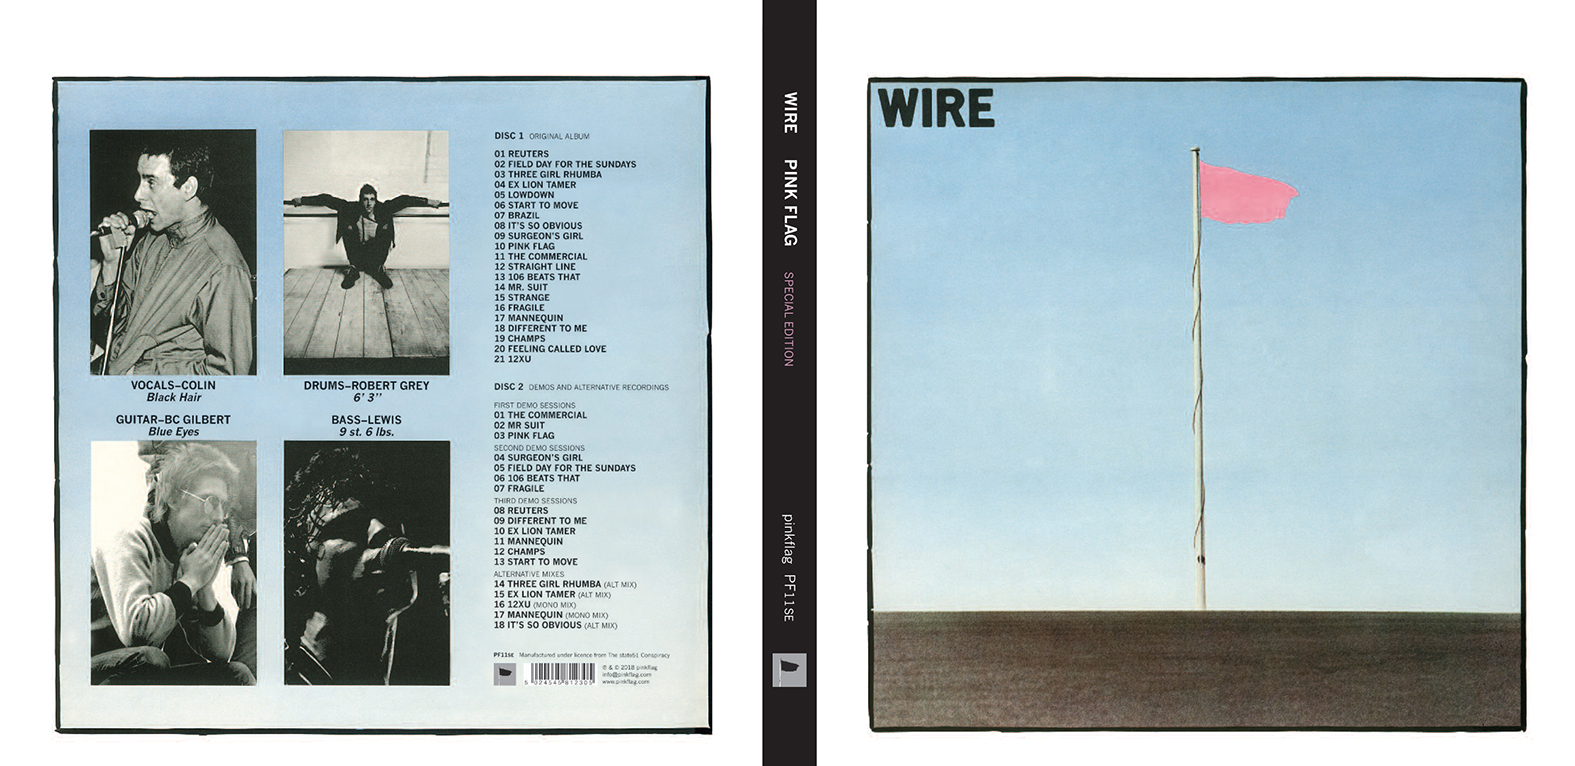 Wire: Pink Flag - RCA Research Online